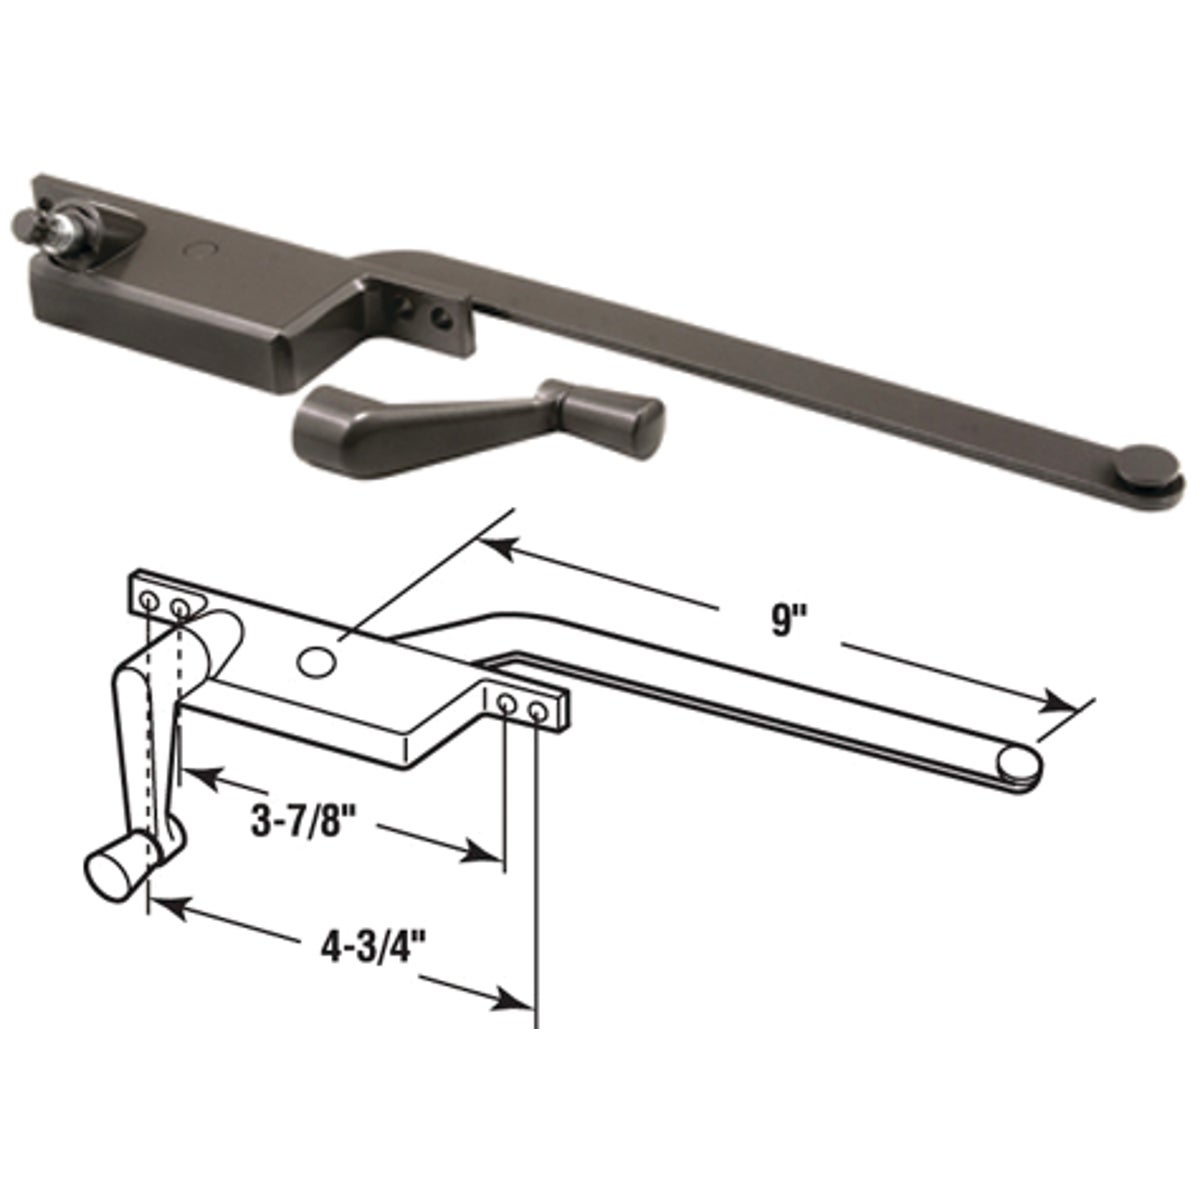 RIGHT CASEMENT OPERATOR - 17390-RB by Prime Line Products